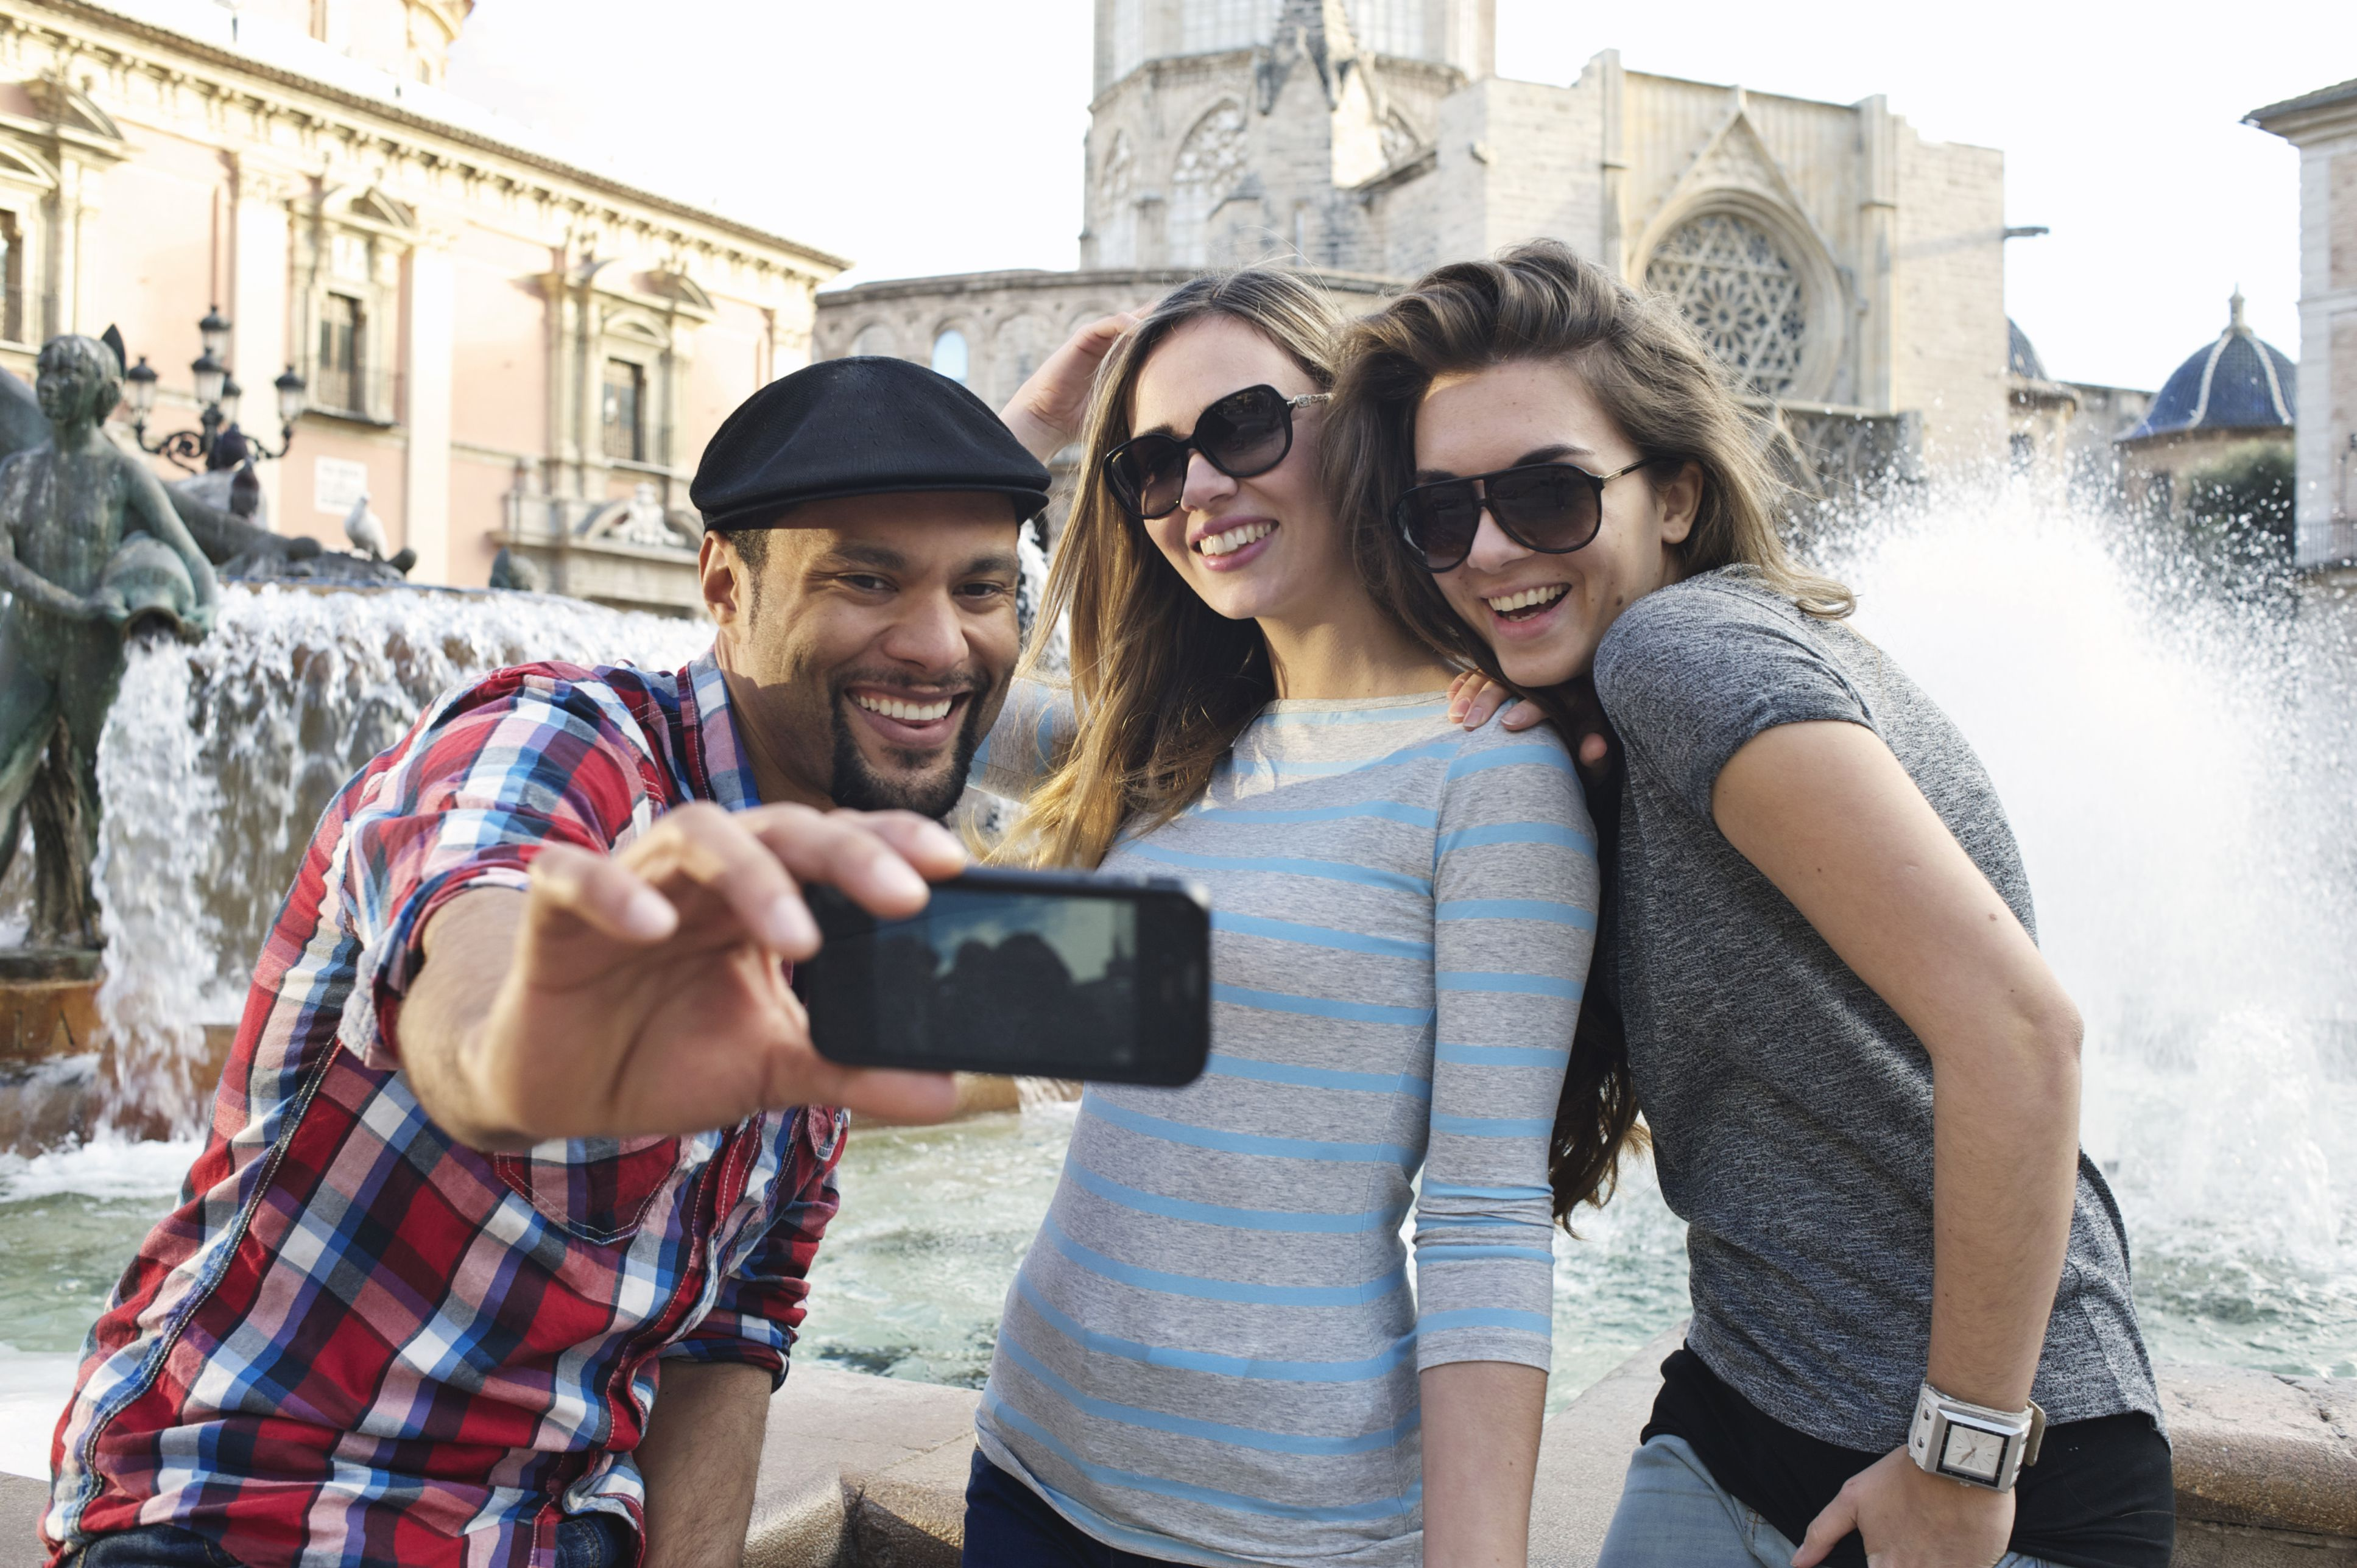 two woman and a man taking a selfie in front of a fountain